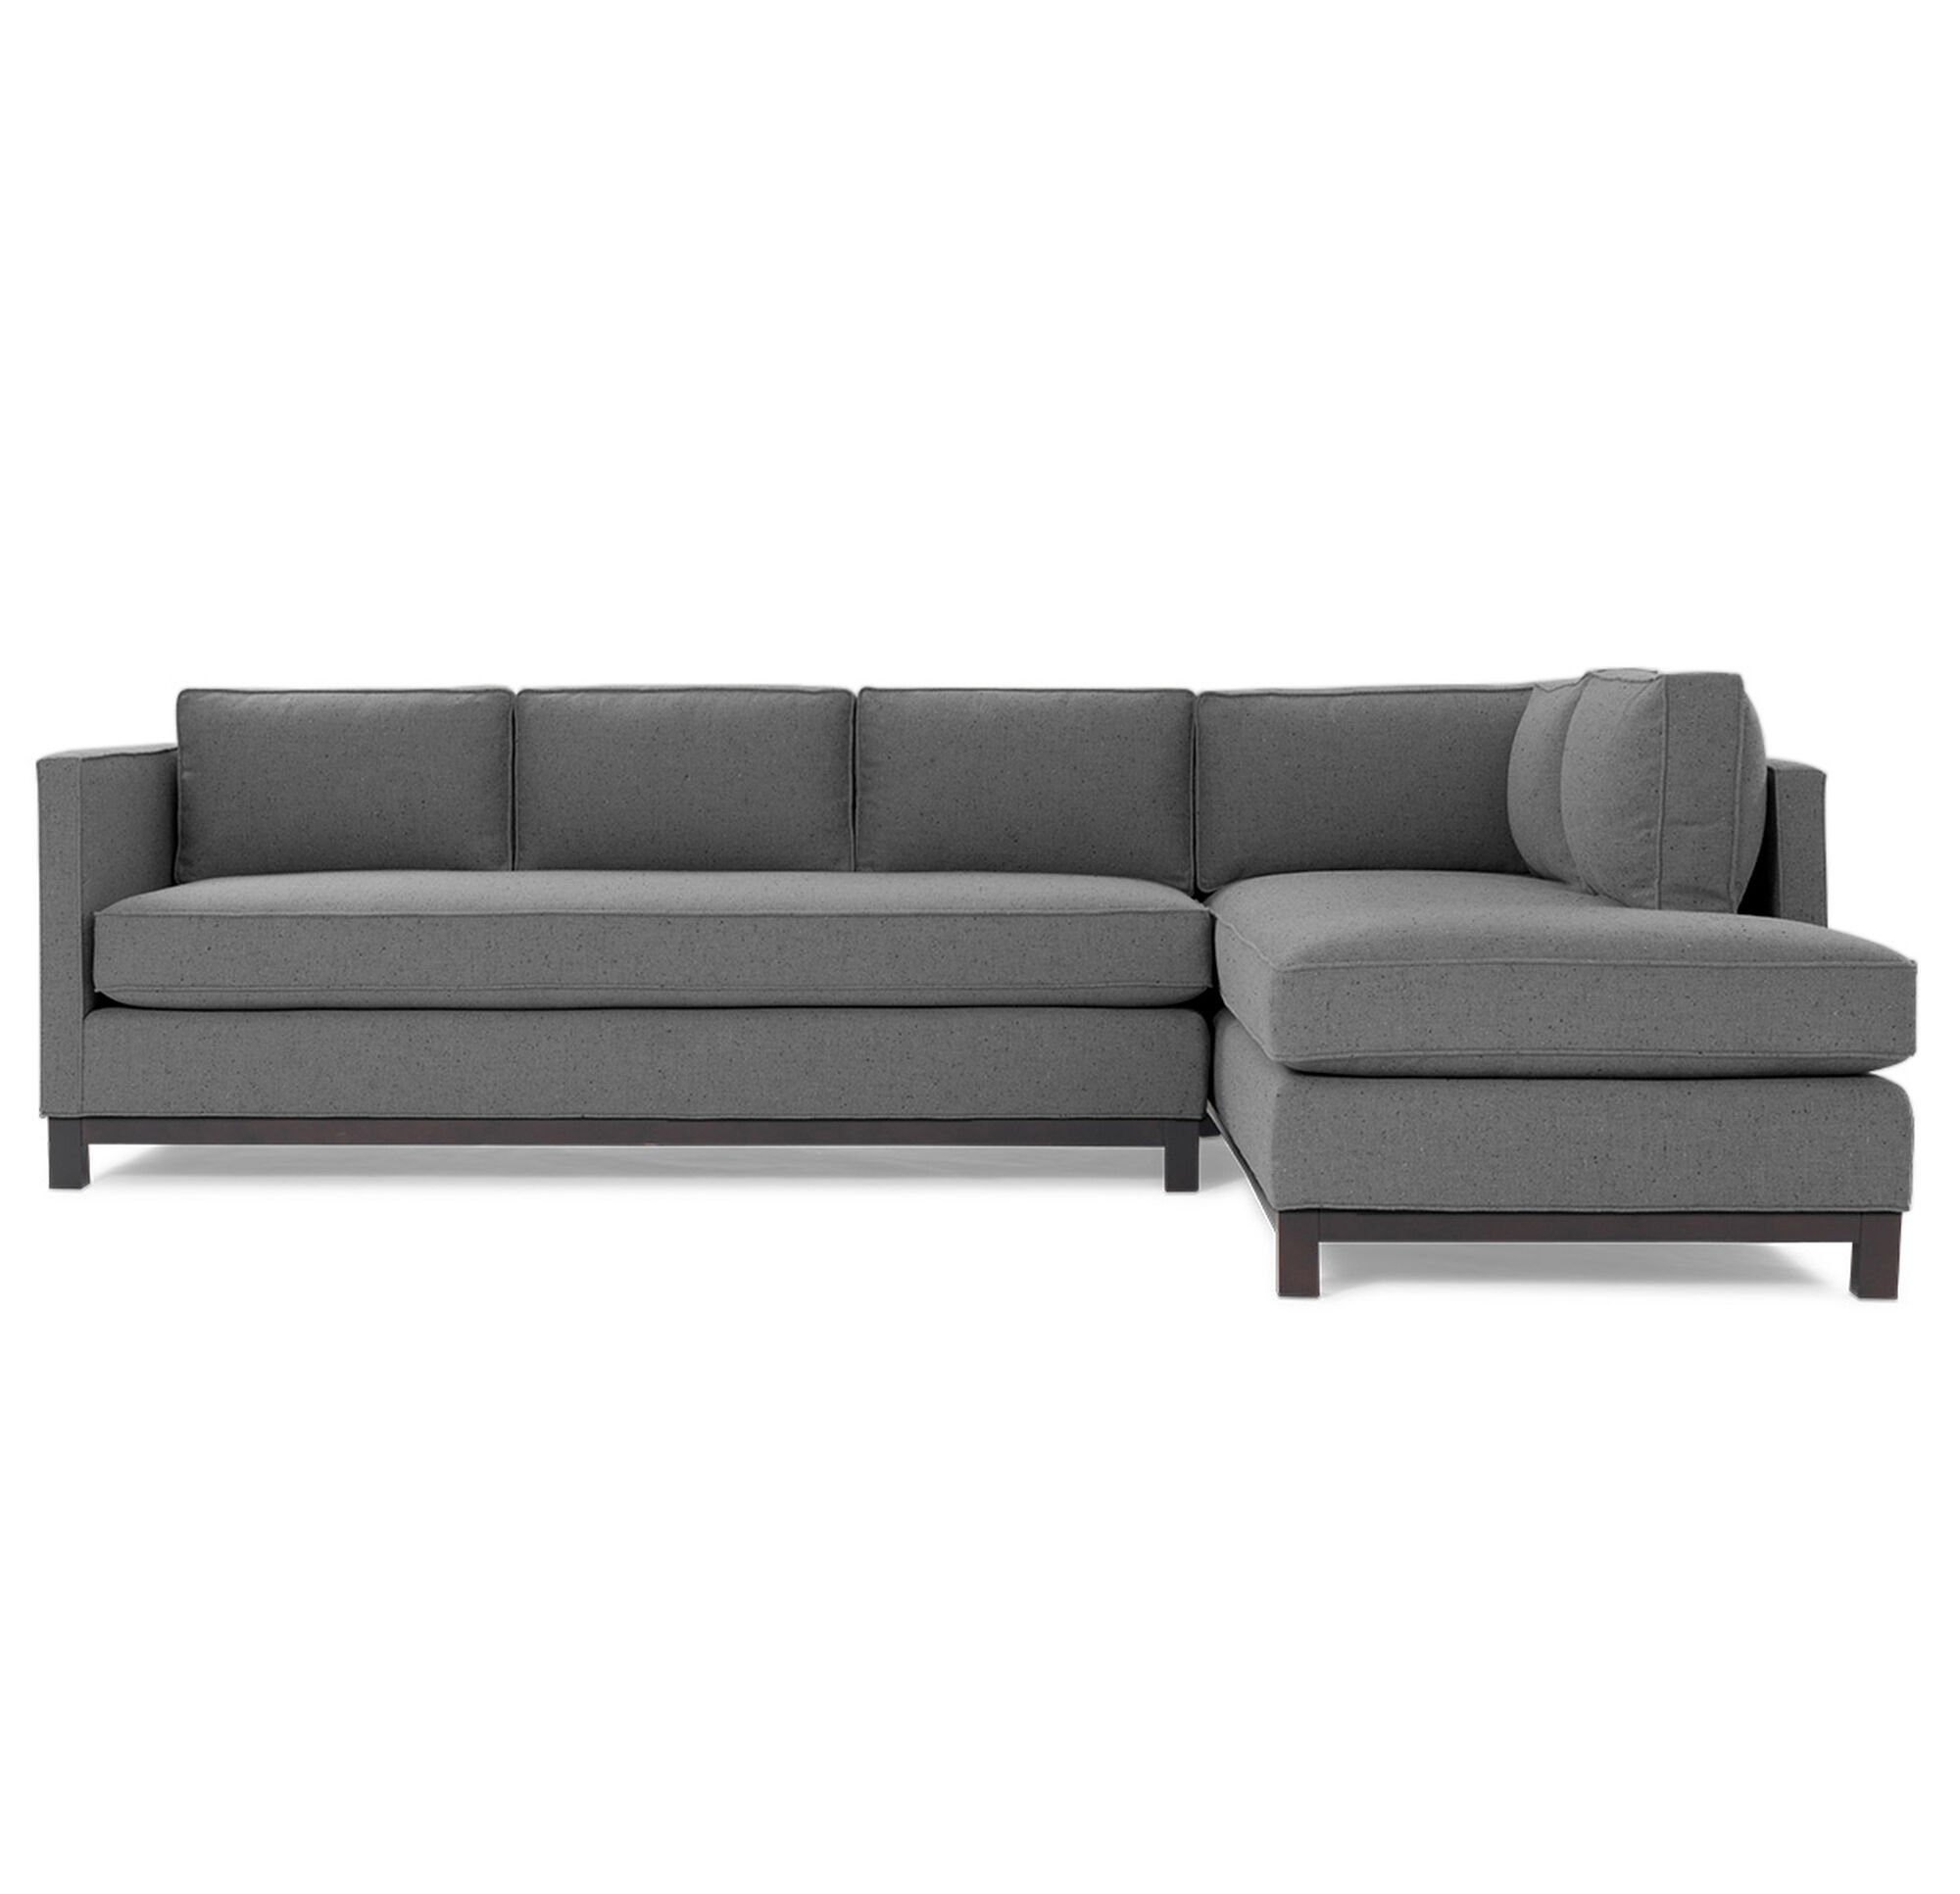 clifton sectional sofa. Black Bedroom Furniture Sets. Home Design Ideas